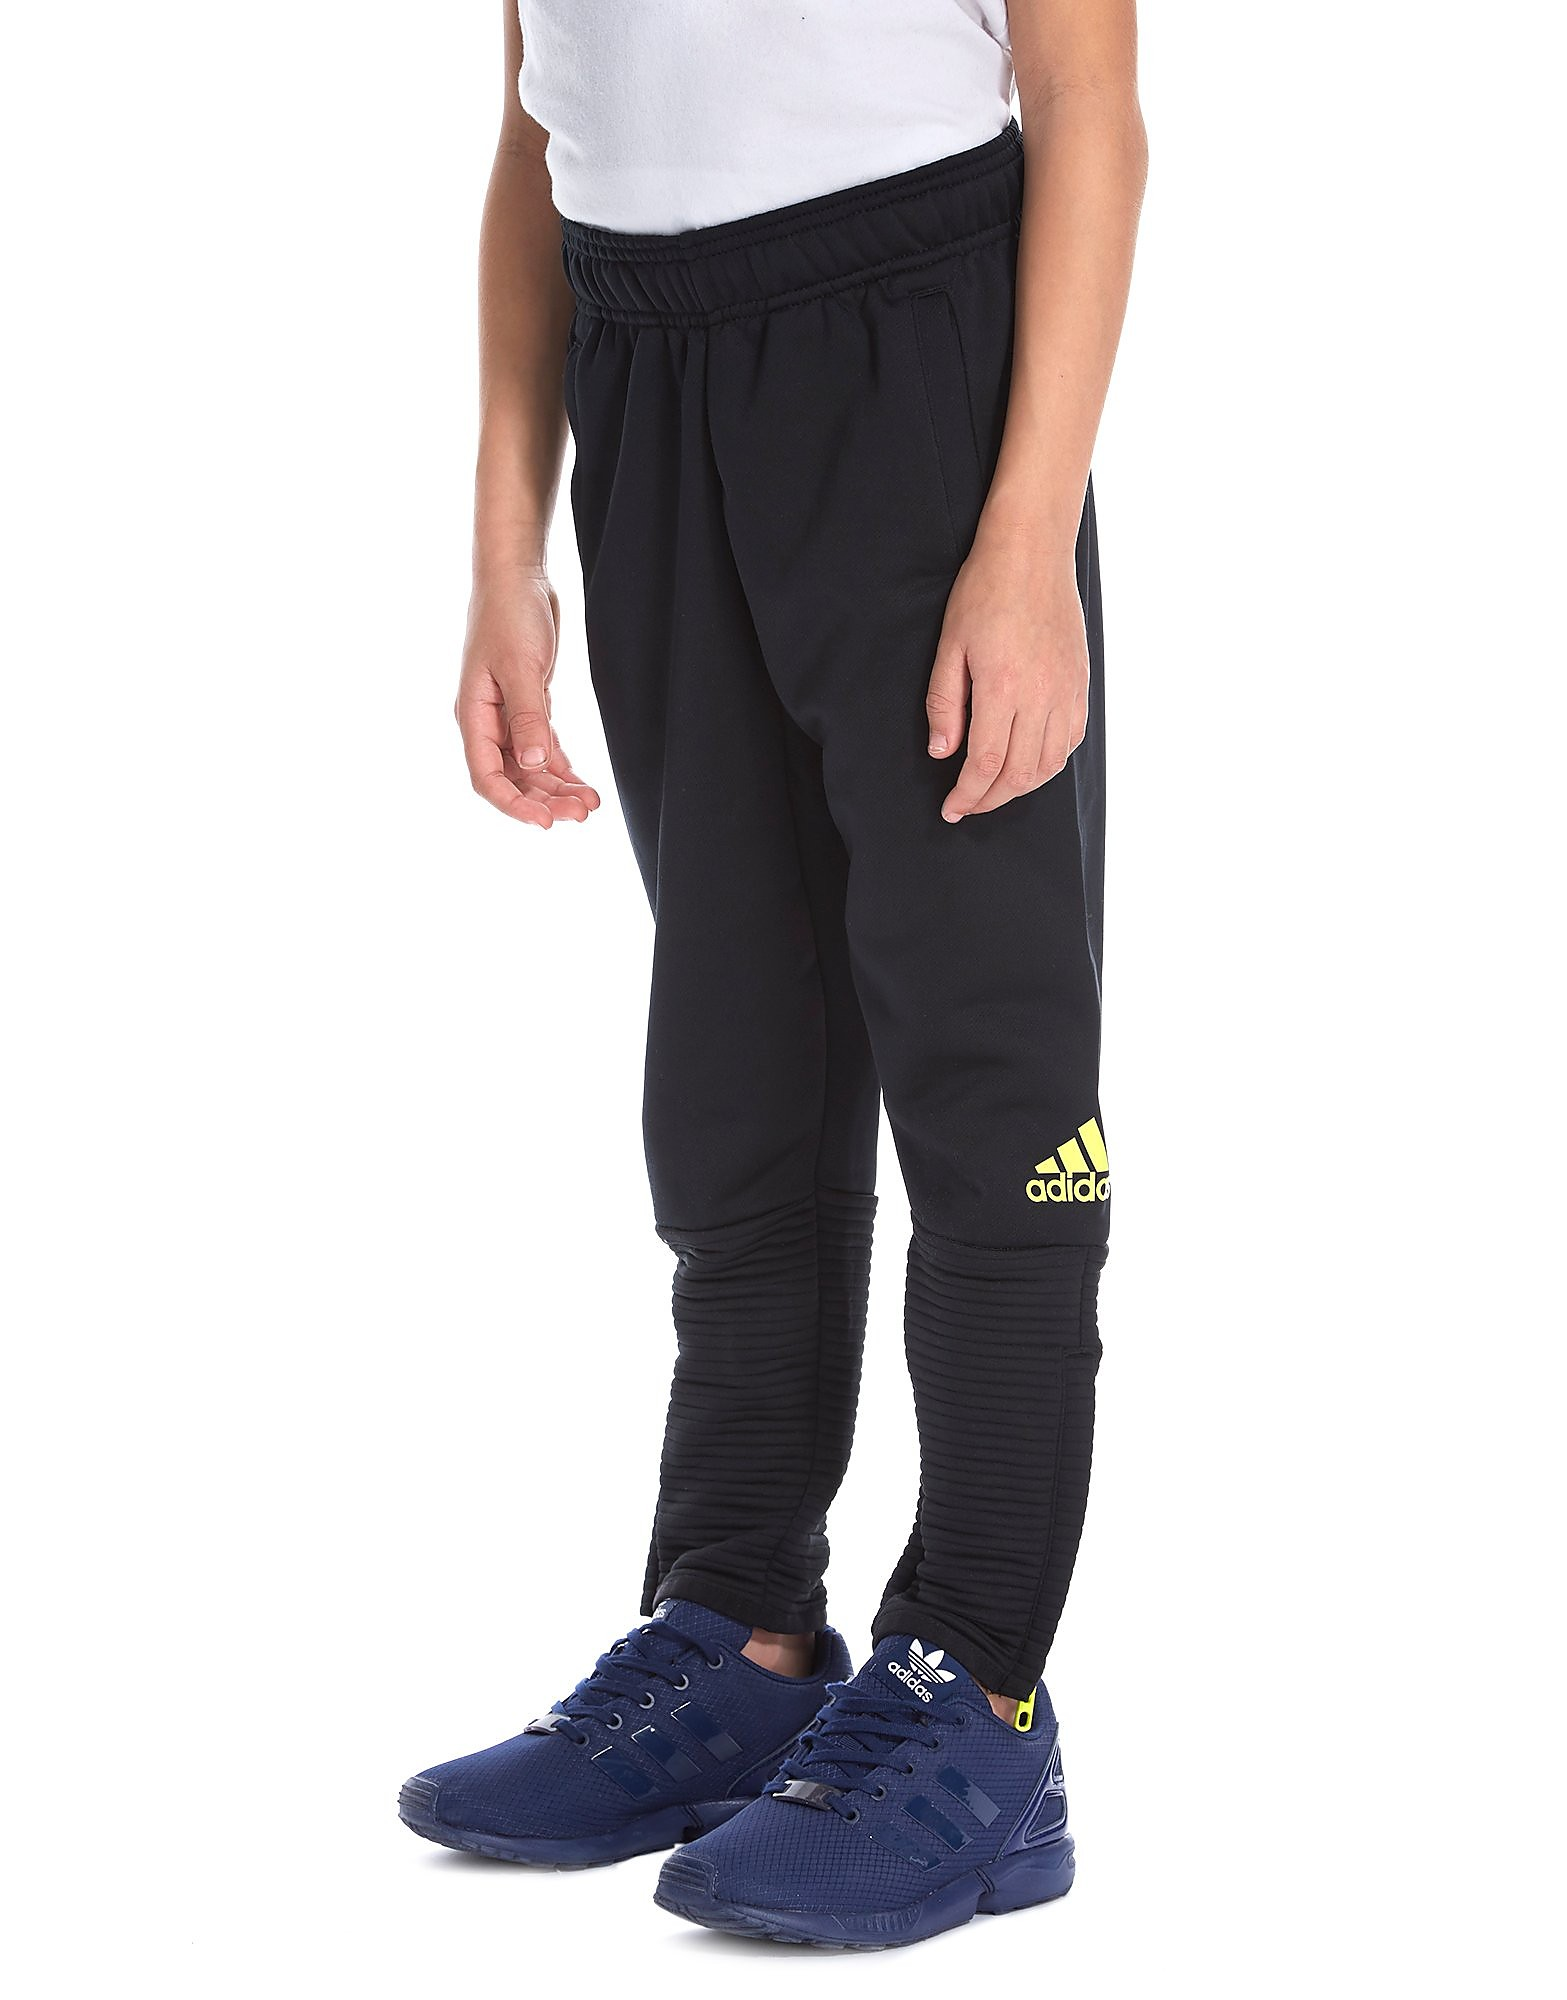 adidas Sport Tiro Pants Children